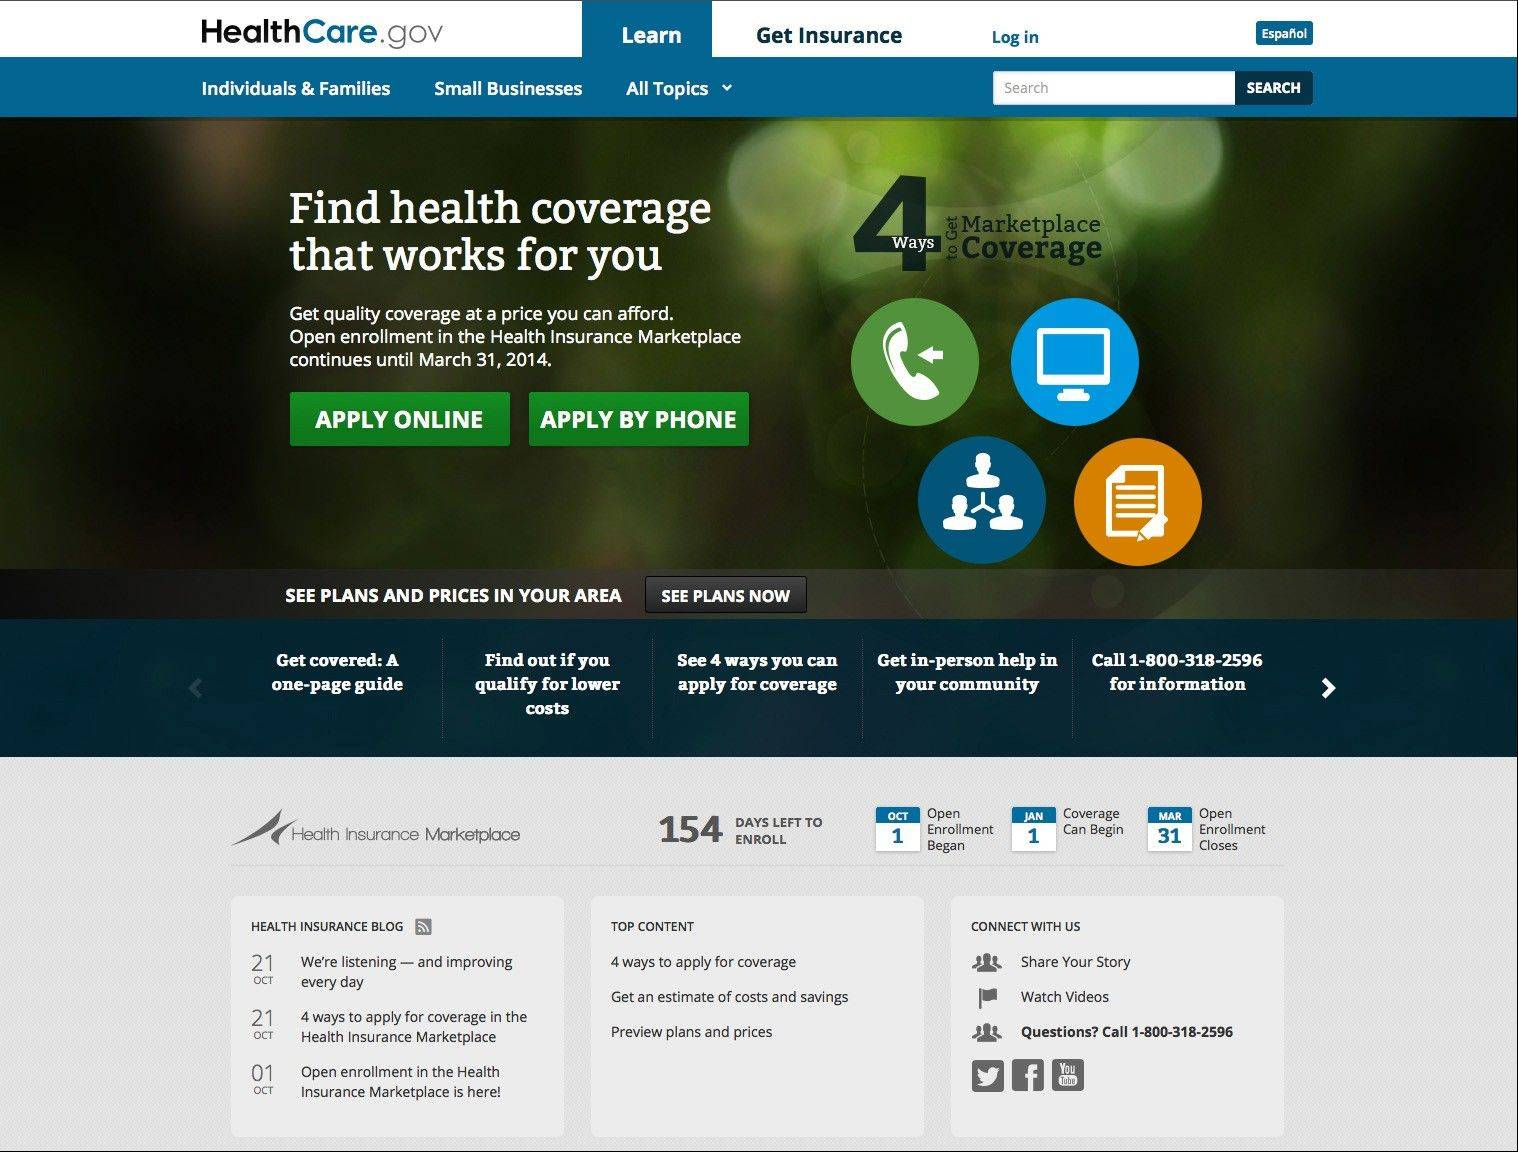 This is the U.S. Department of Health and Human Services� main landing web page for HealthCare.gov. Illinois is relying on the federal system for its citizens to sign up for health insurance through the Affordable Care Act�s exchanges.